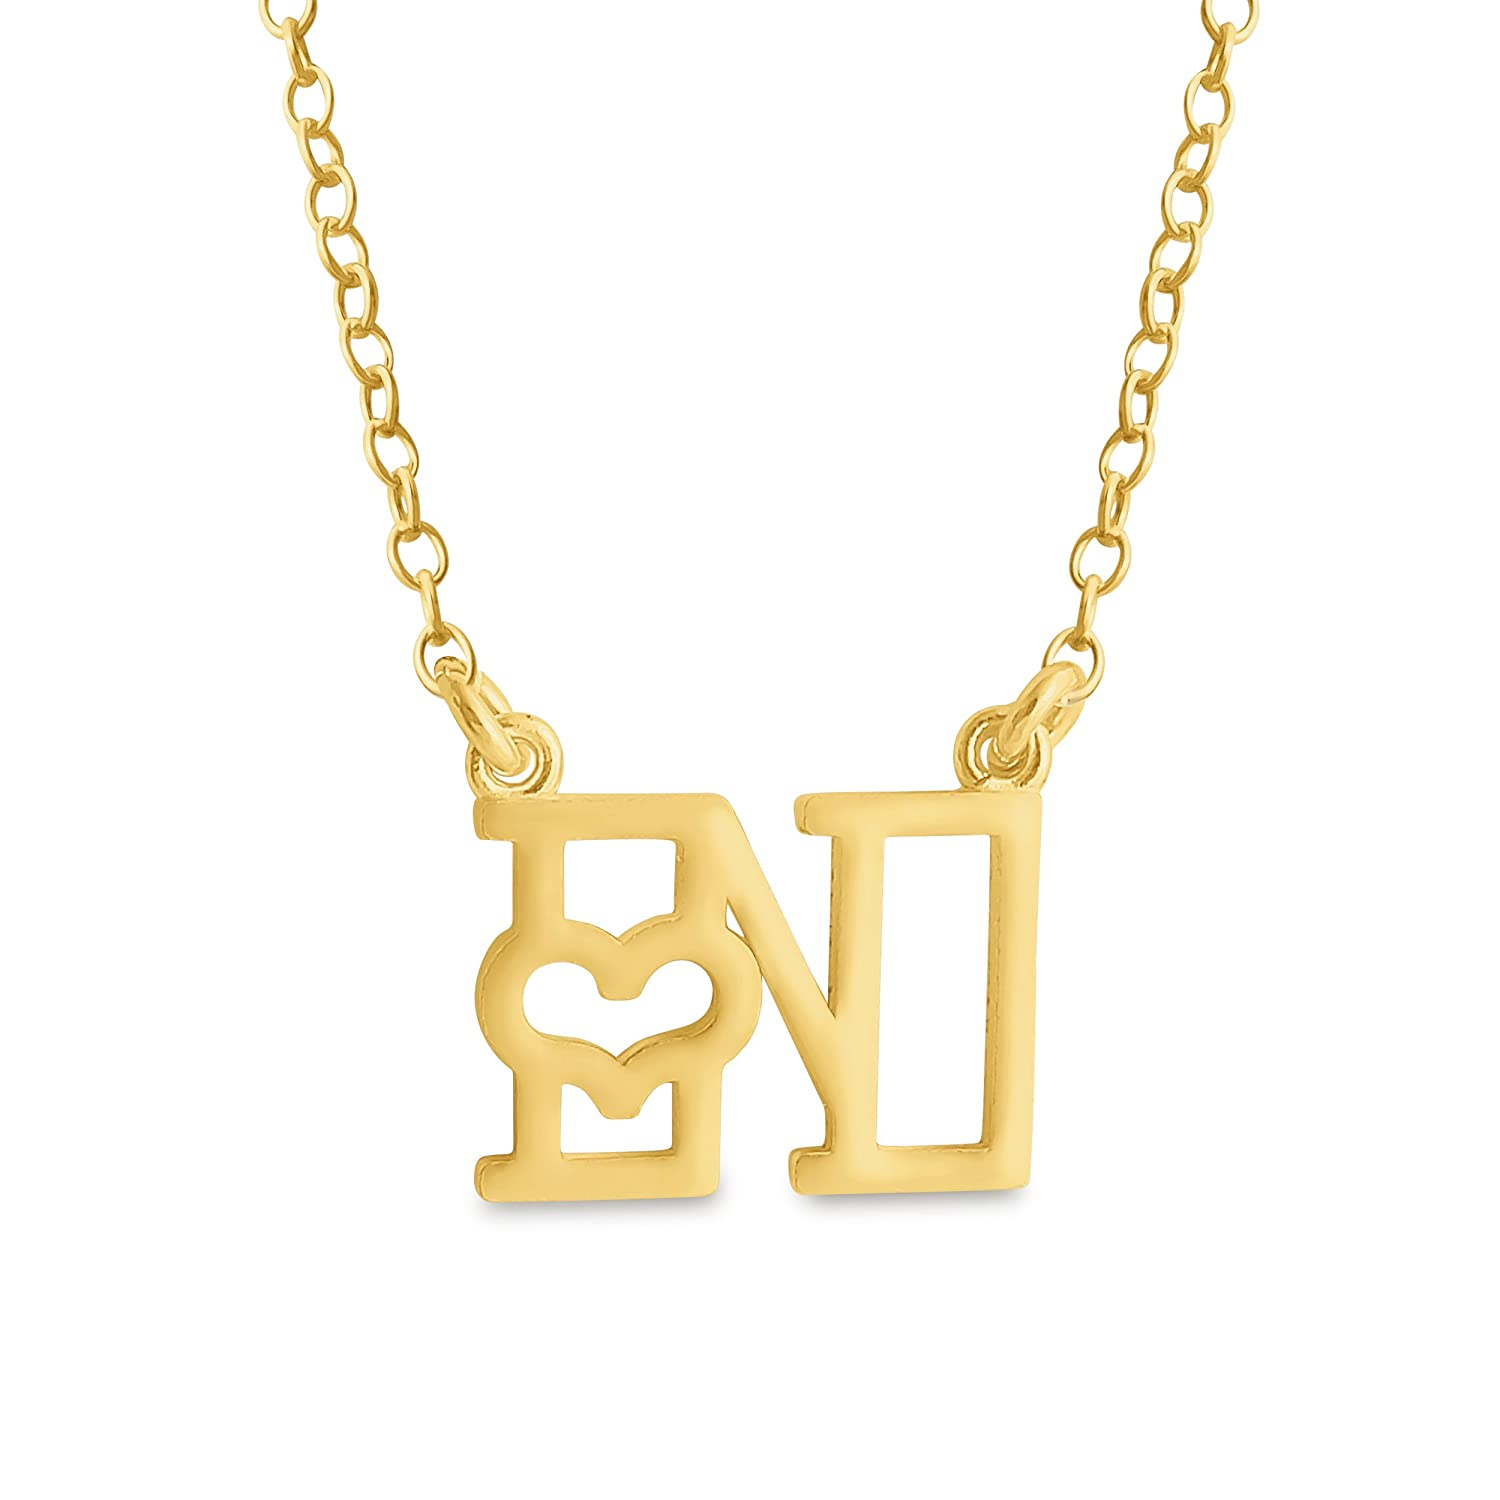 Azaggi Gold Plated Alphabet Initial Pendant Necklace Letter N Pendant Heart Sideways.This Gold Plated Silver Pendant Necklace is the Perfect Personalised Jewelry Gift for Women